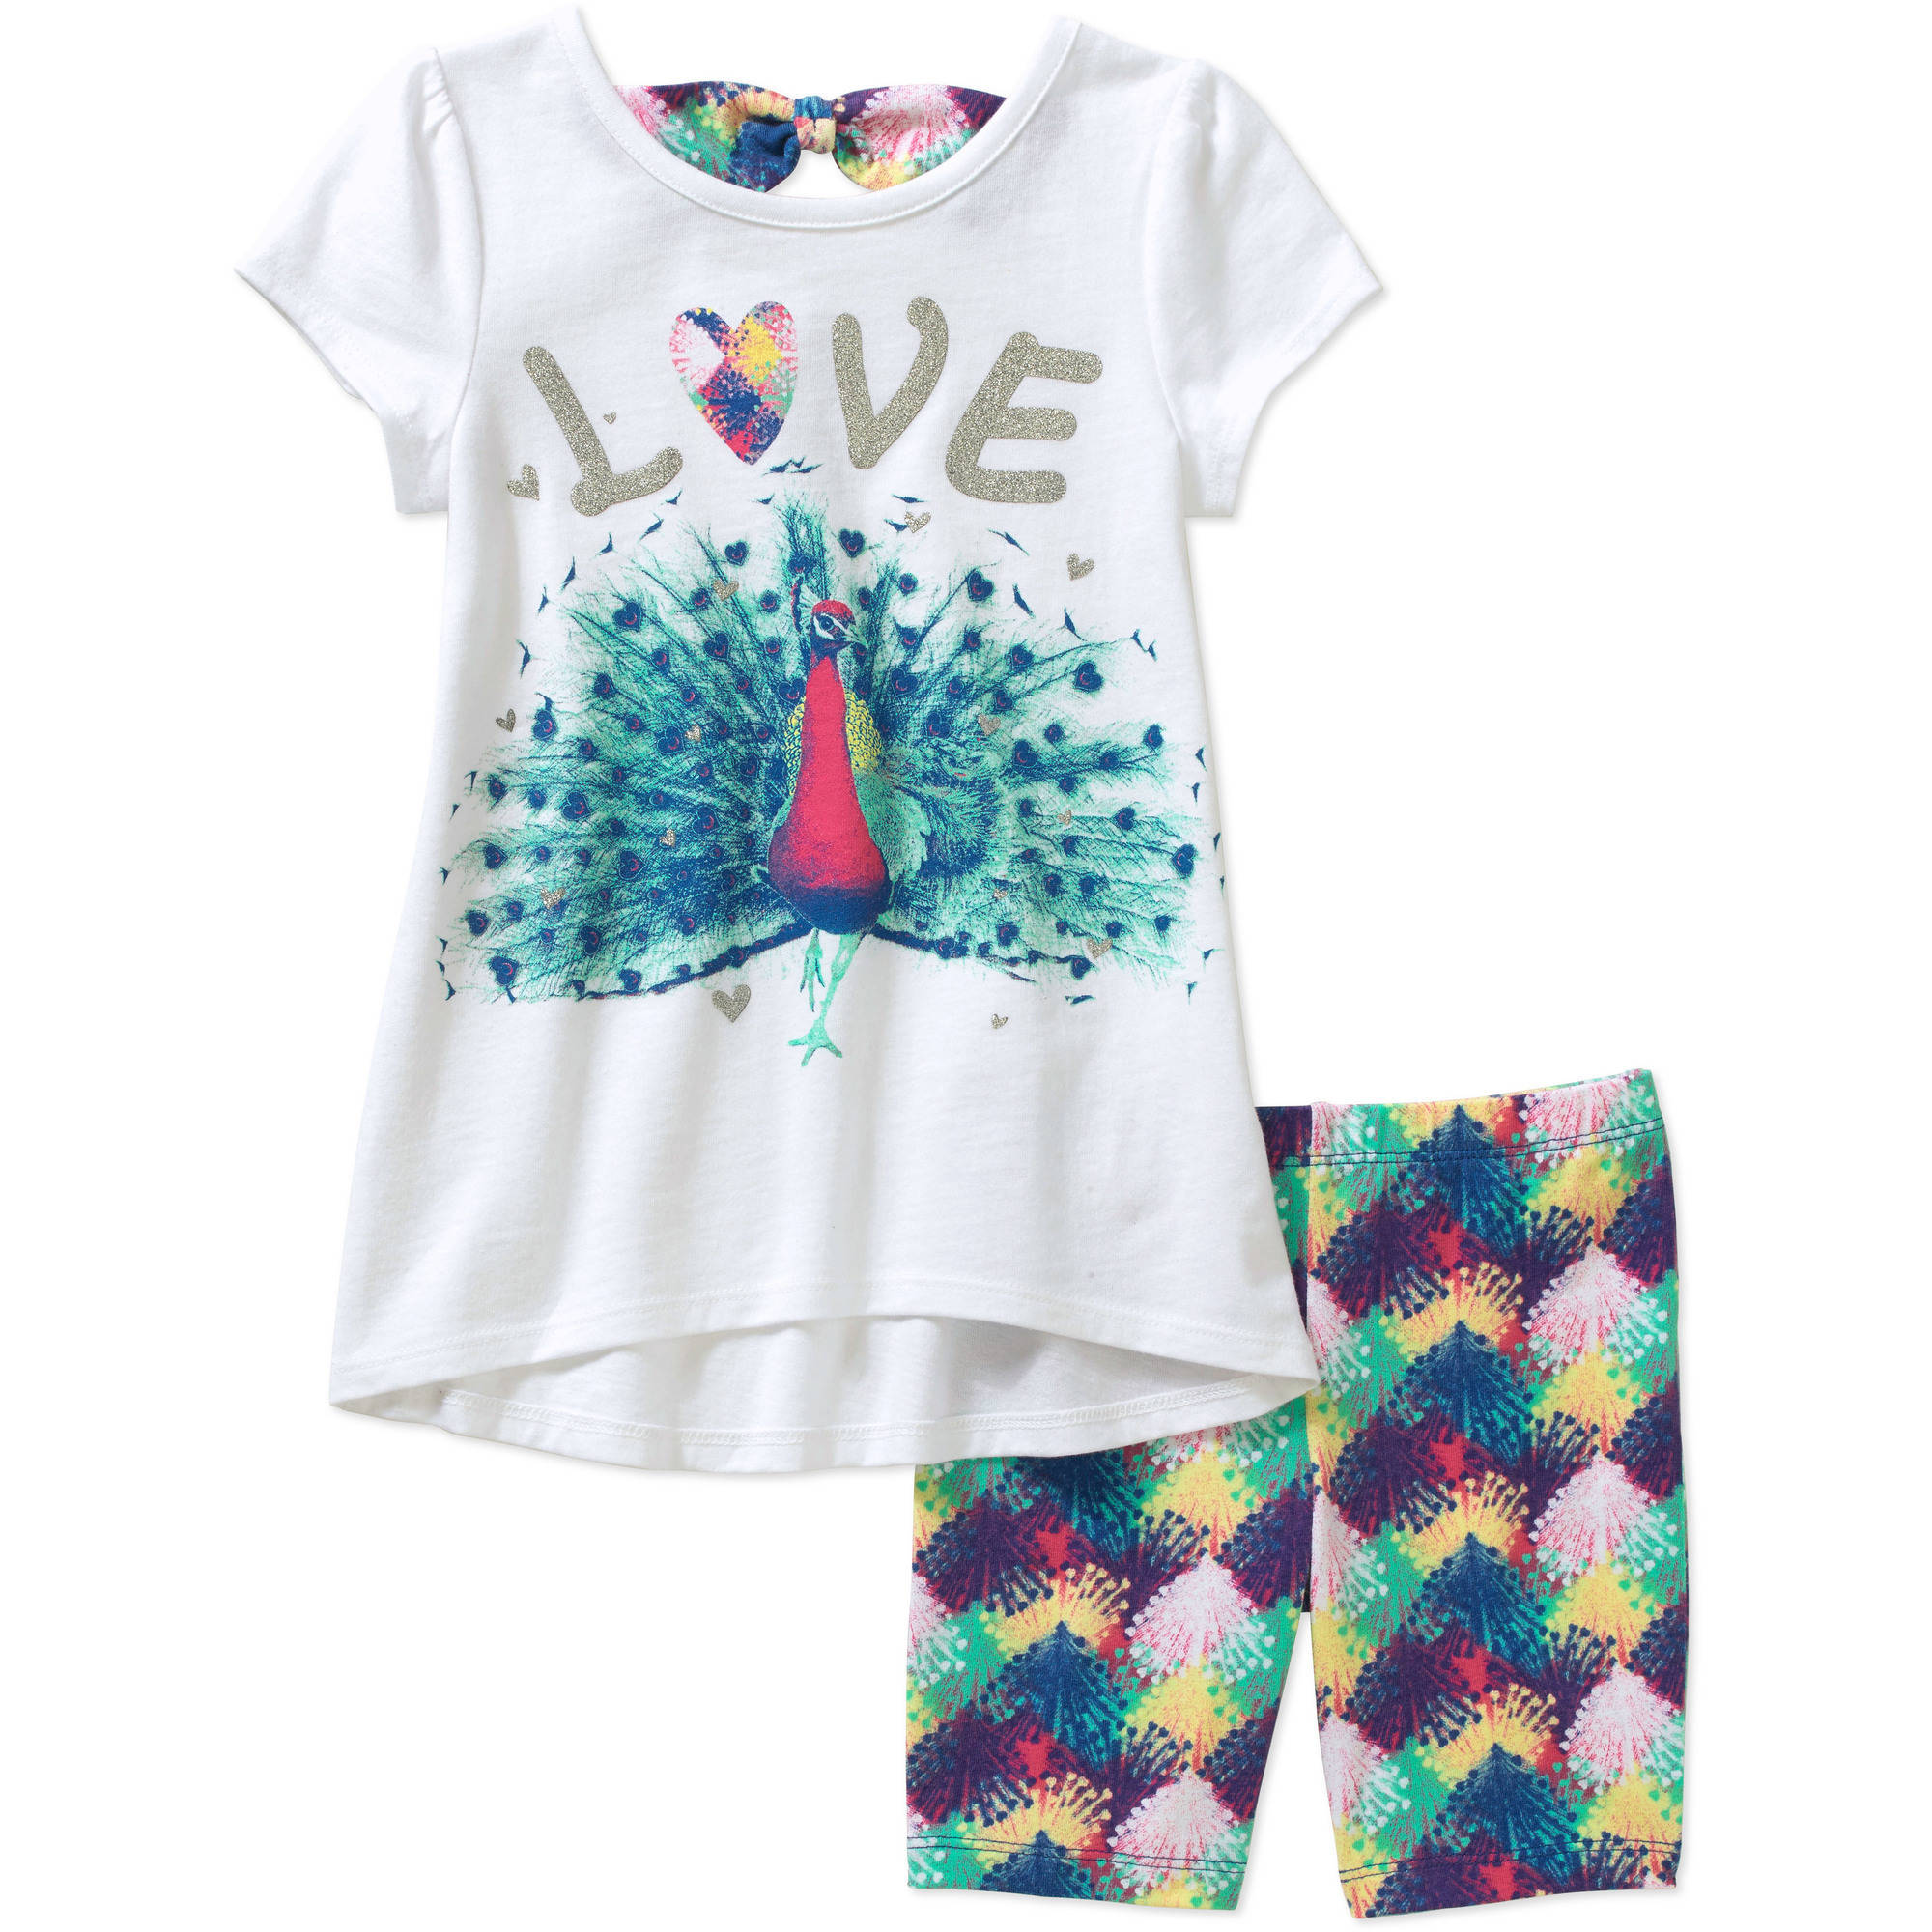 Faded Glory Girls' Short Sleeve Tee and Short Set